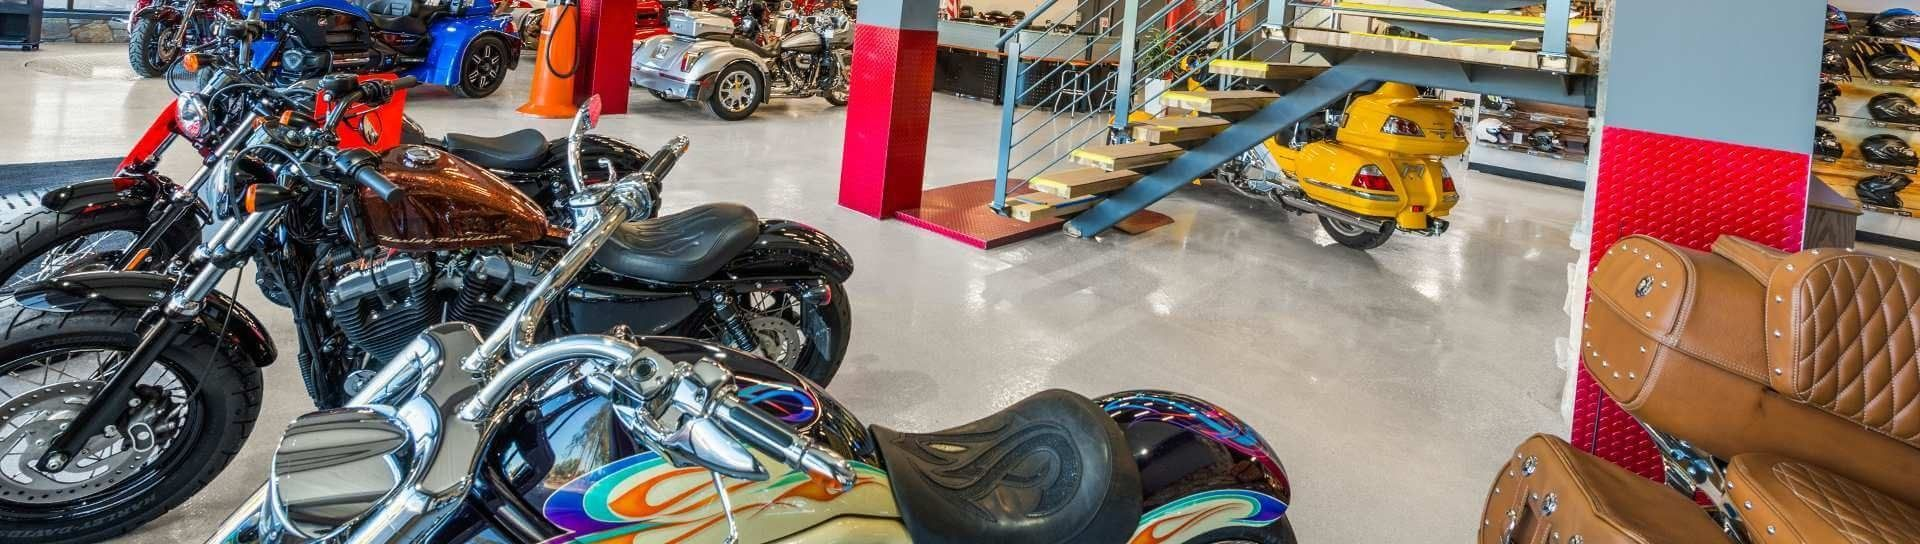 New & Used Motorcycles and Trikes for Sale | Harley-Davidson